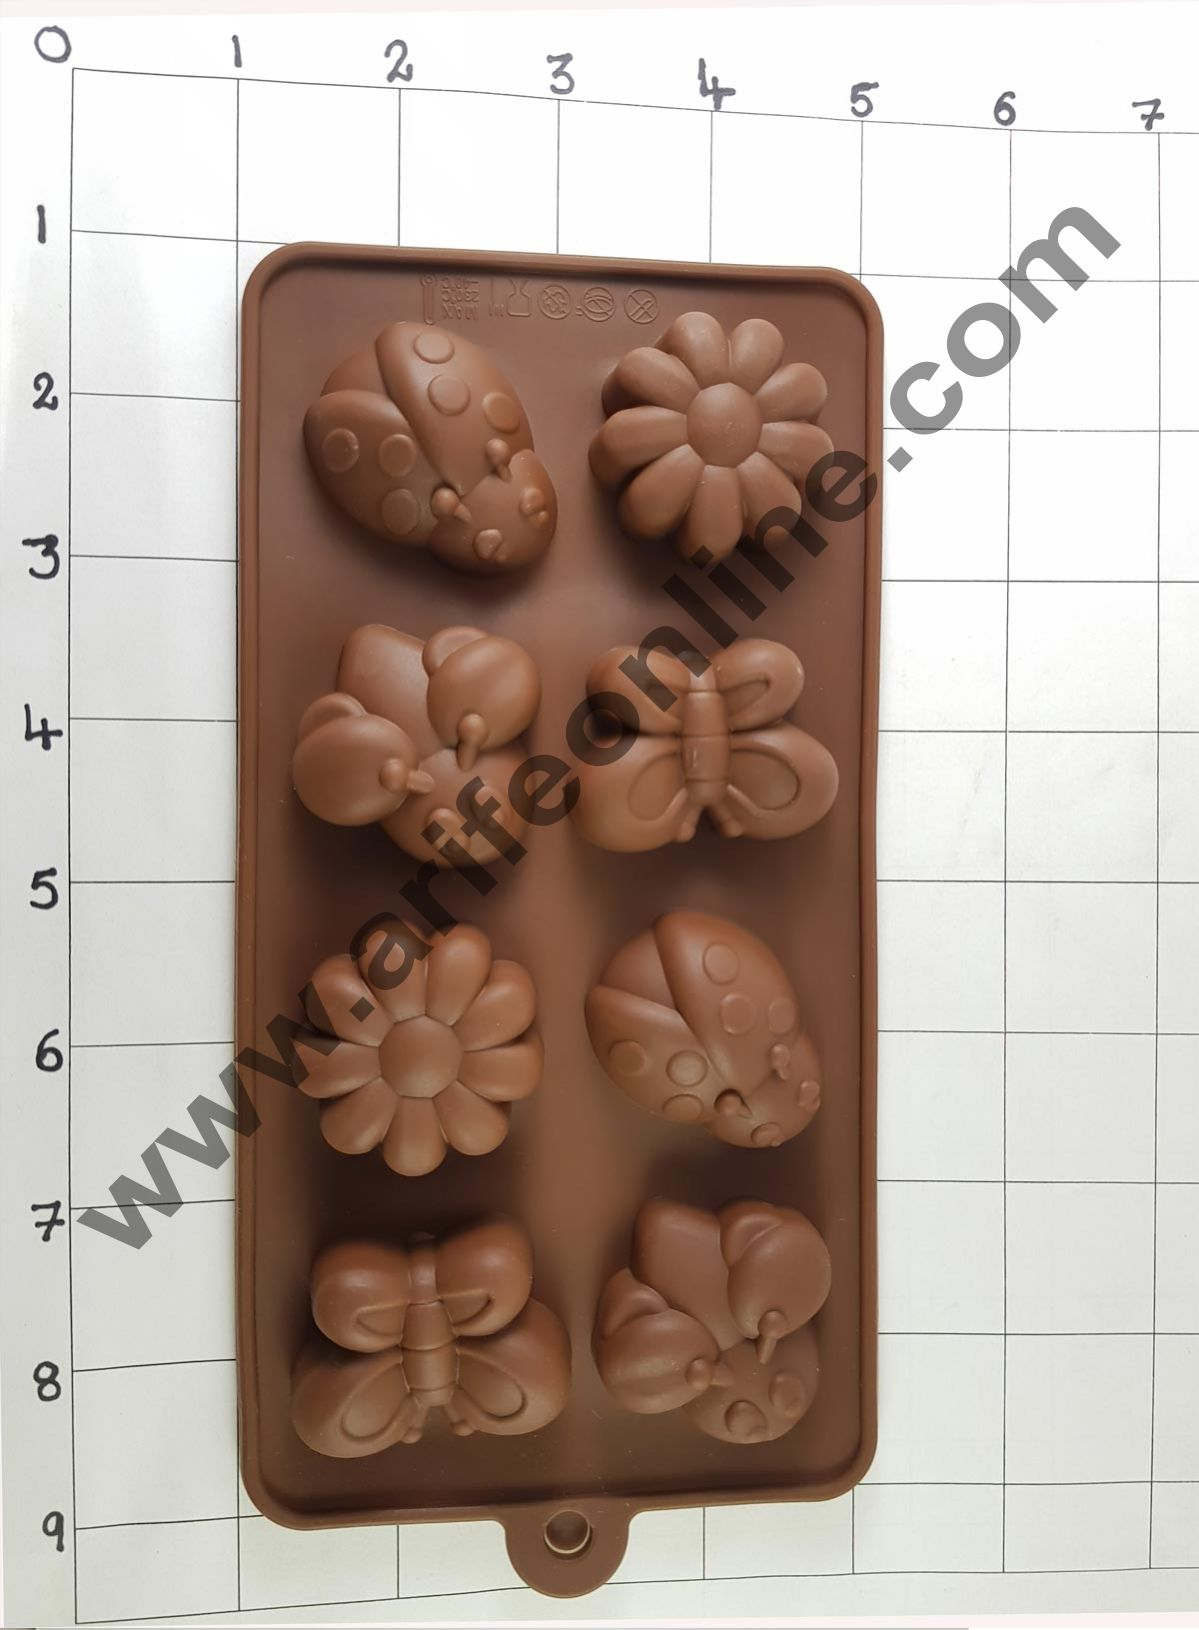 Cake Decor Silicon 8 Cavity Butterfly and Flower Design Brown Chocolate Mould, Ice Mould, Chocolate Decorating Mould